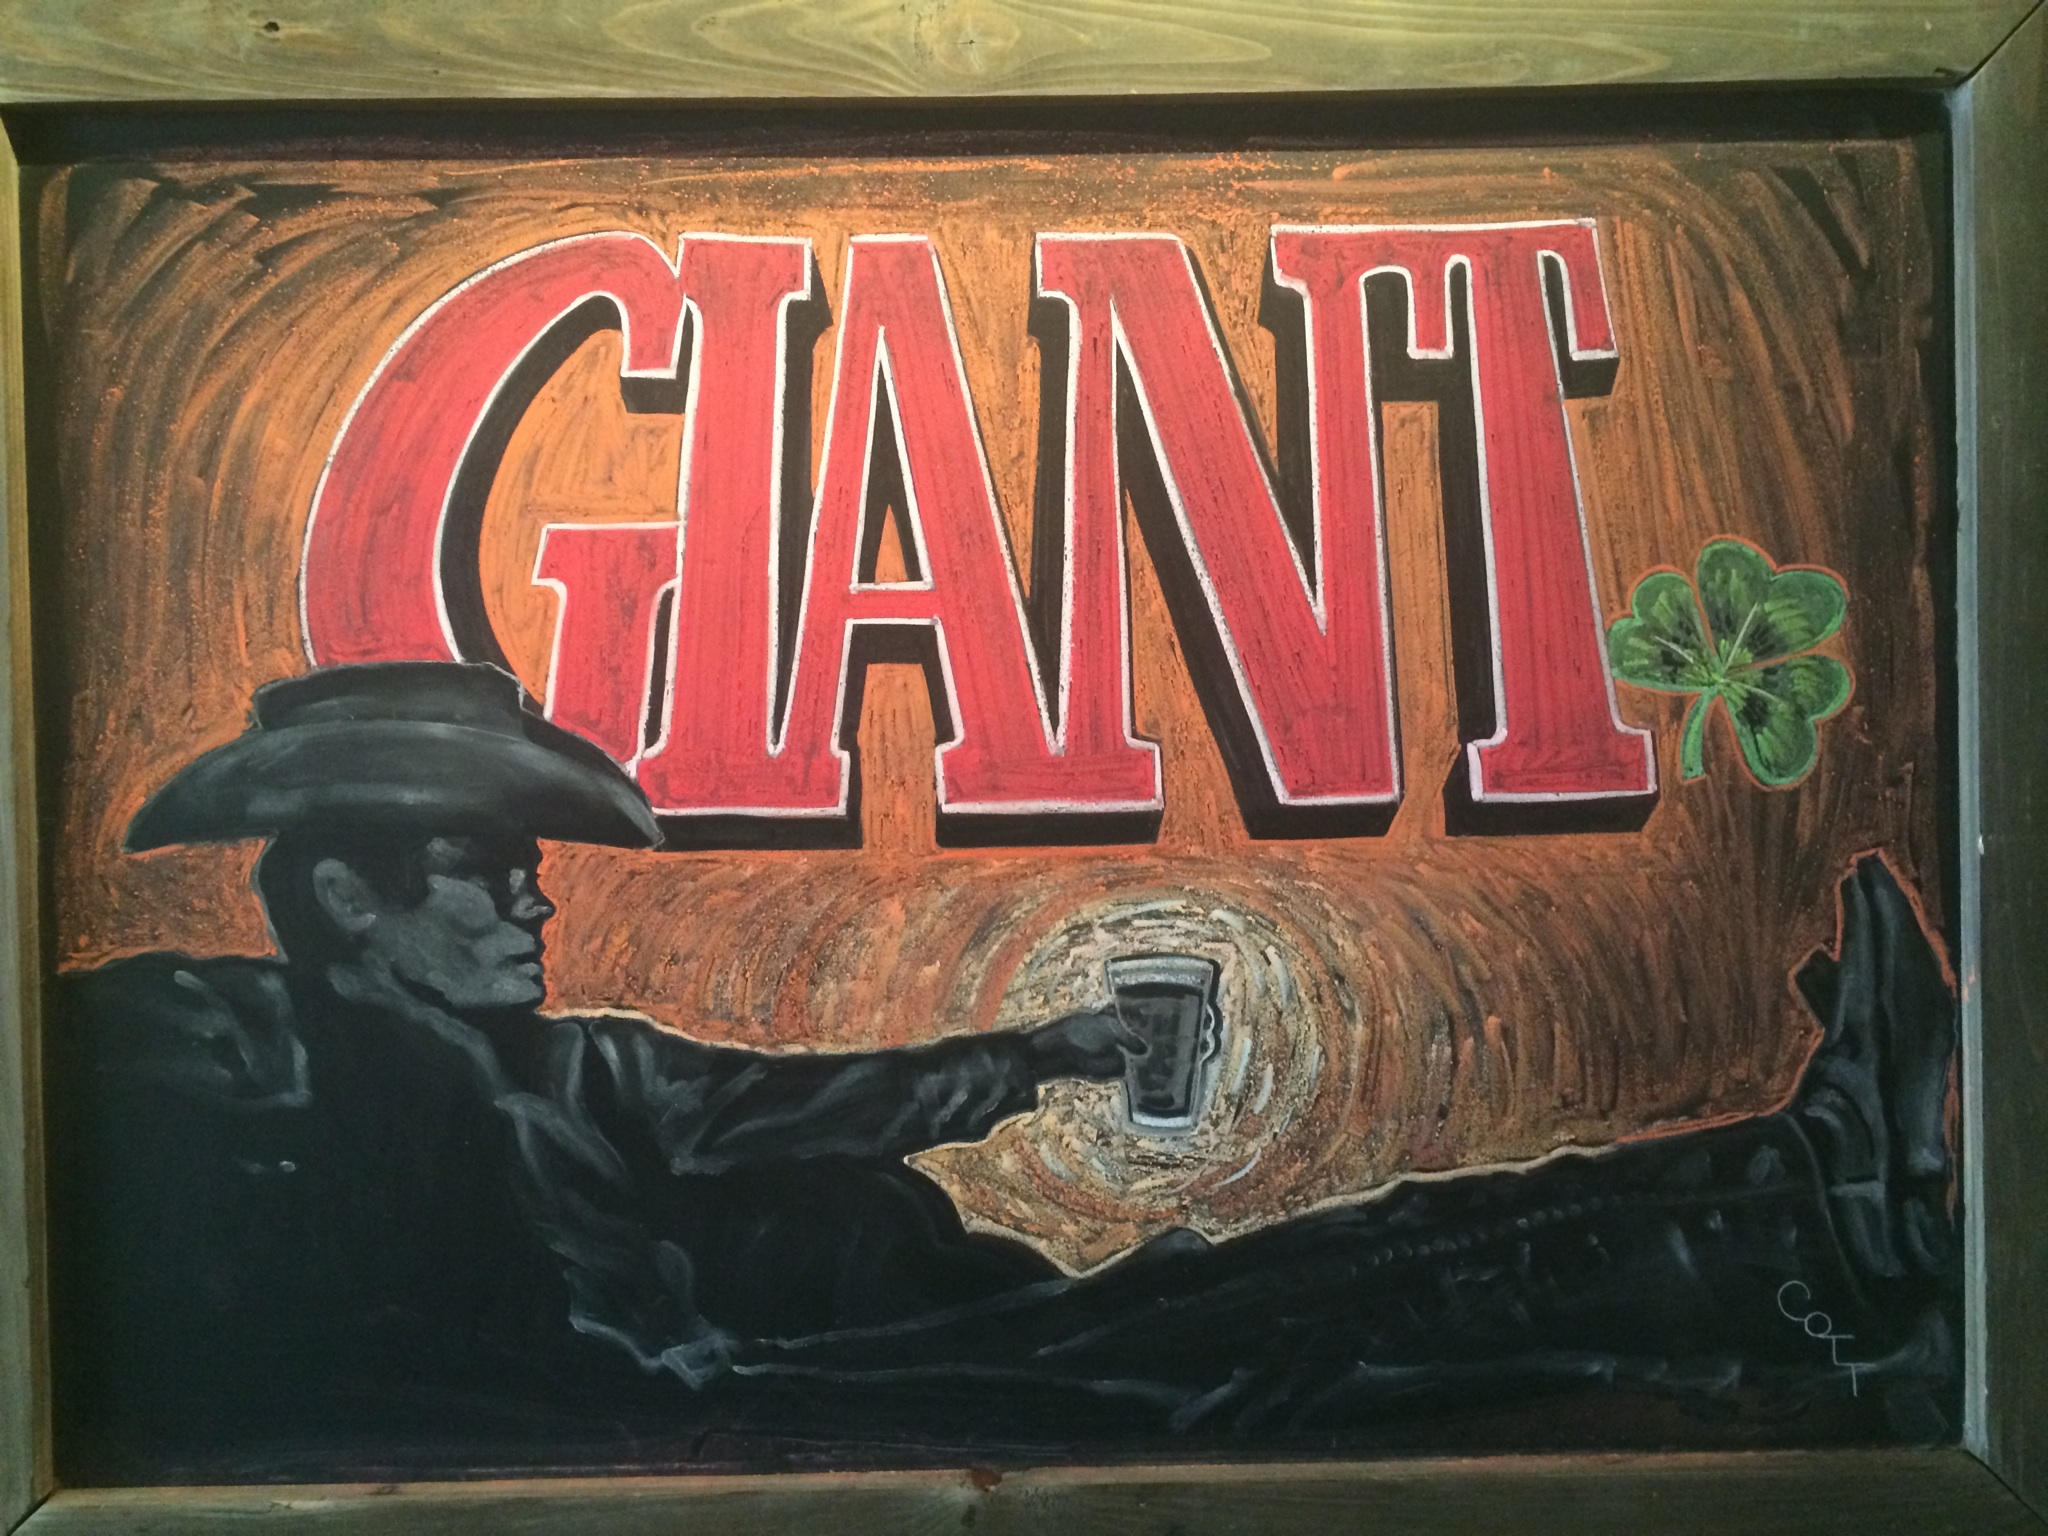 The Giant - a chocolatey stout